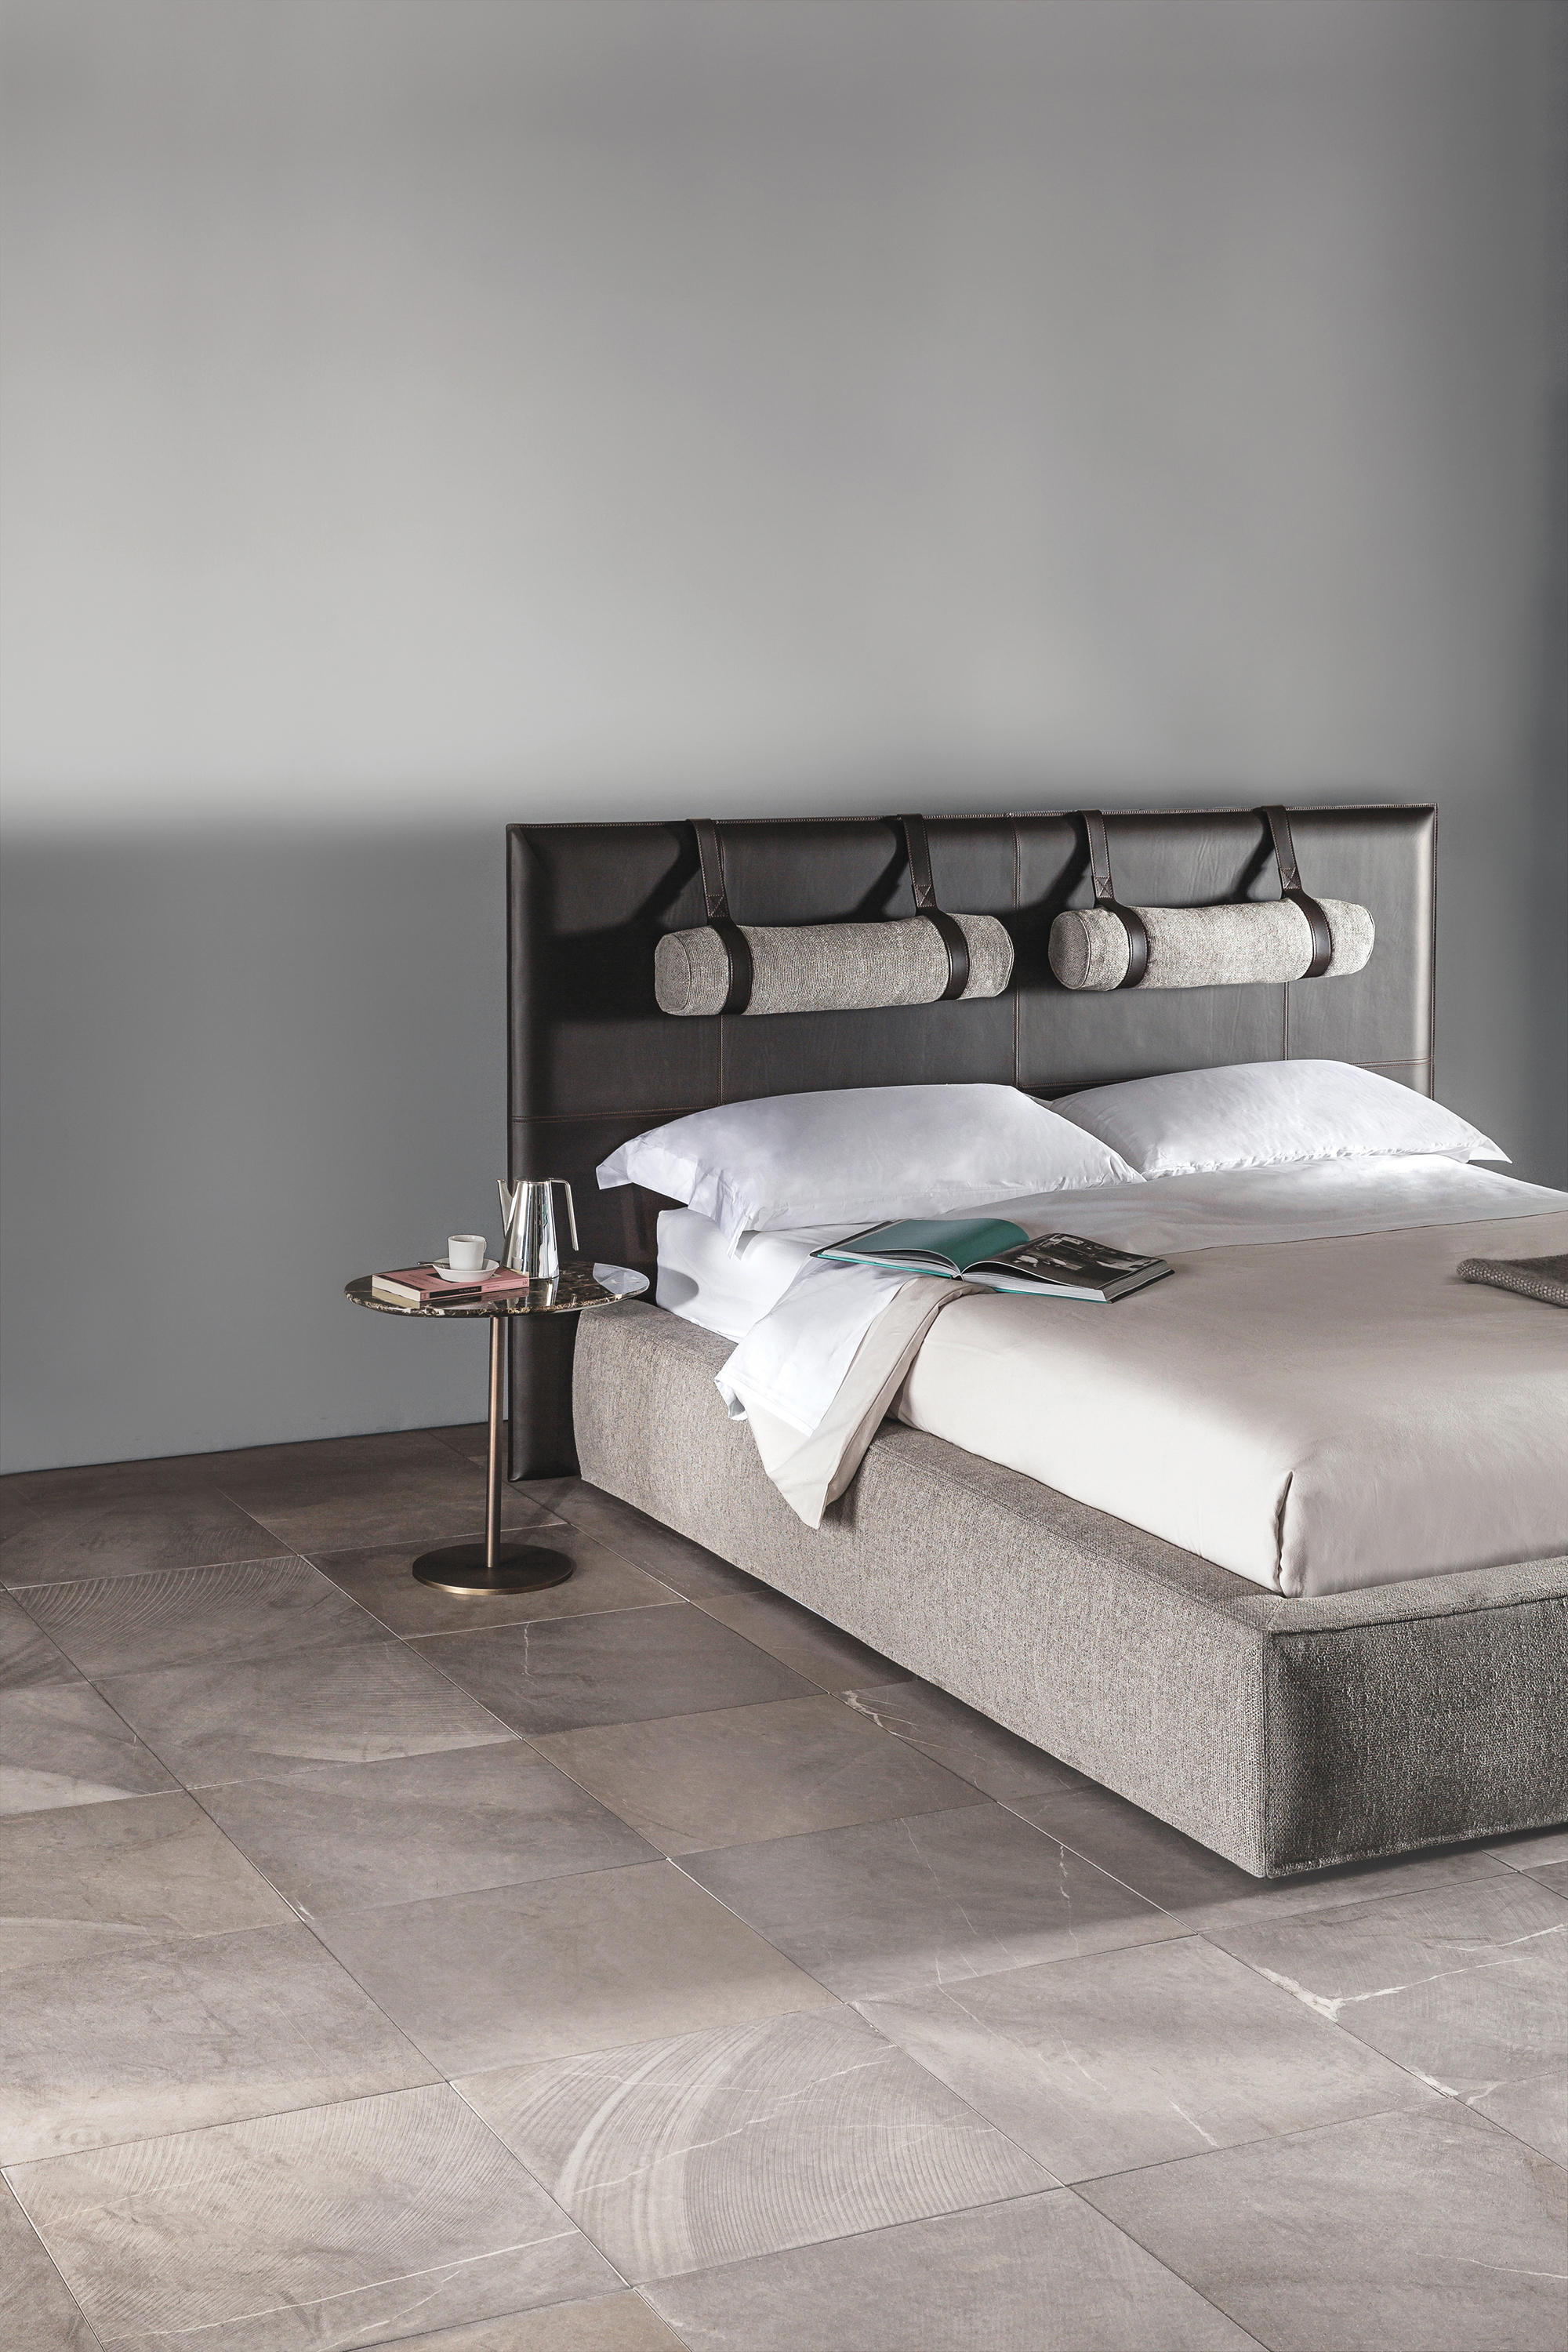 Adjustable Bed Base >> TUBE 5800 BED - Beds from Vibieffe | Architonic